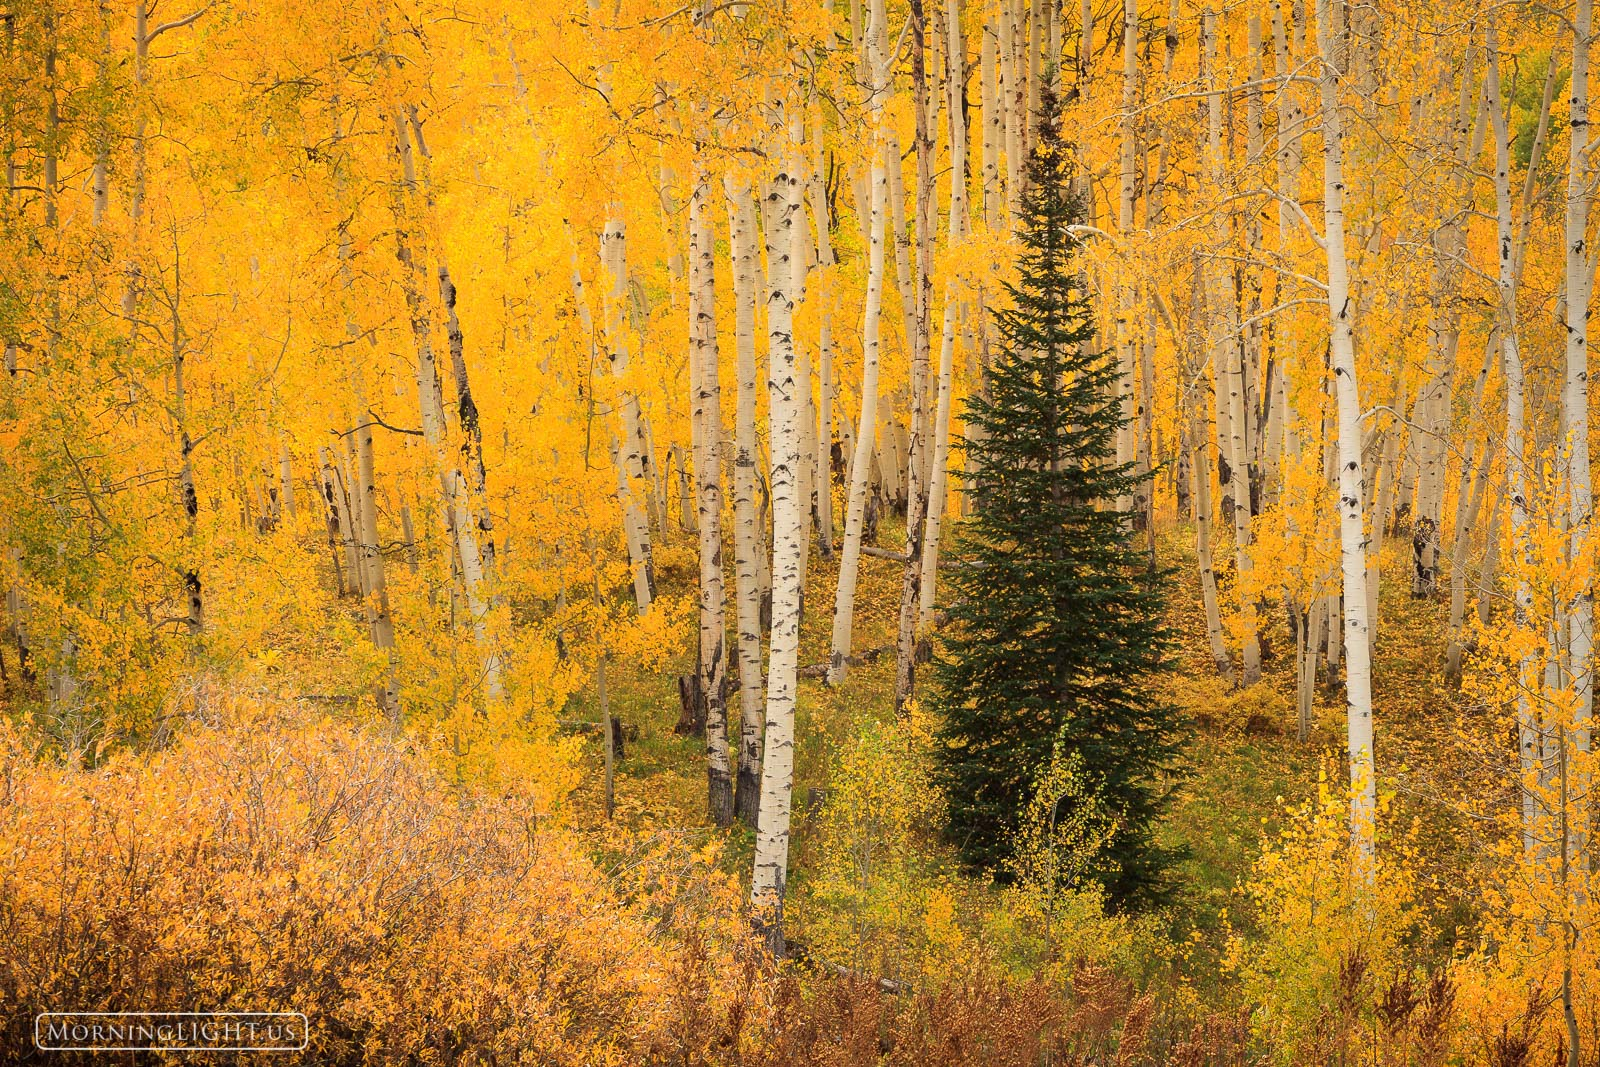 2011, Colorado, USA, america, aspen, autumn, kebler pass, october, southern colorado, tree, united states of america, yellow, photo